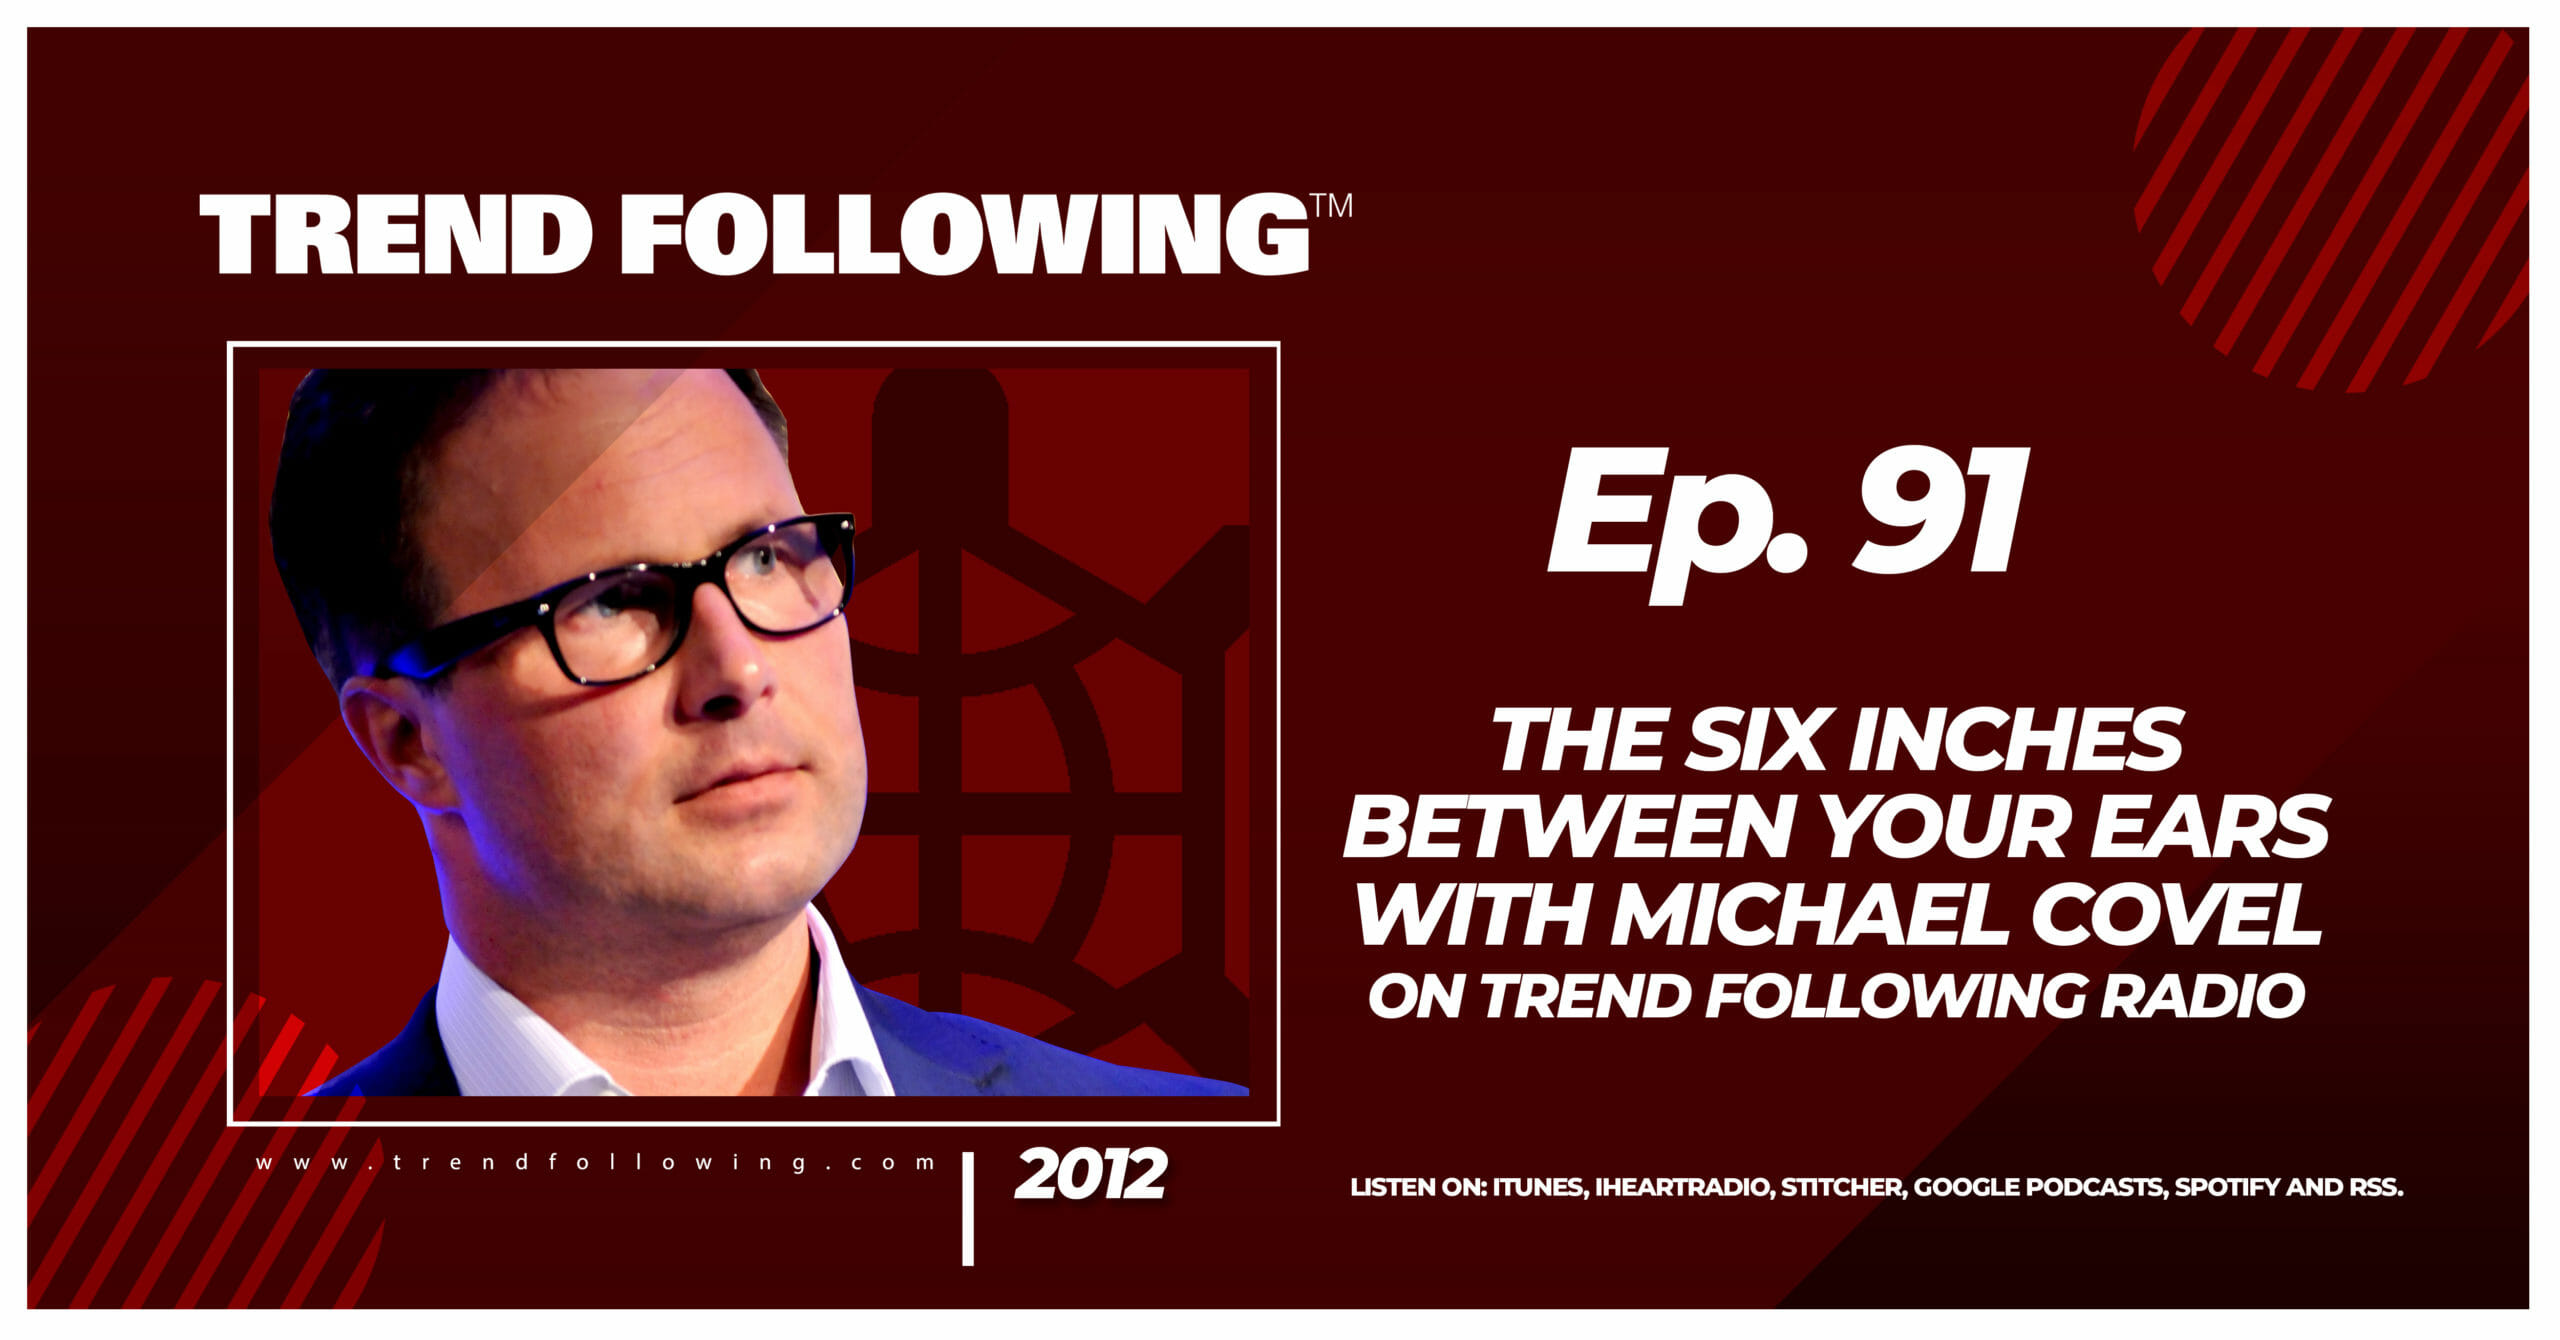 The Six Inches Between Your Ears with Michael Covel on Trend Following Radio